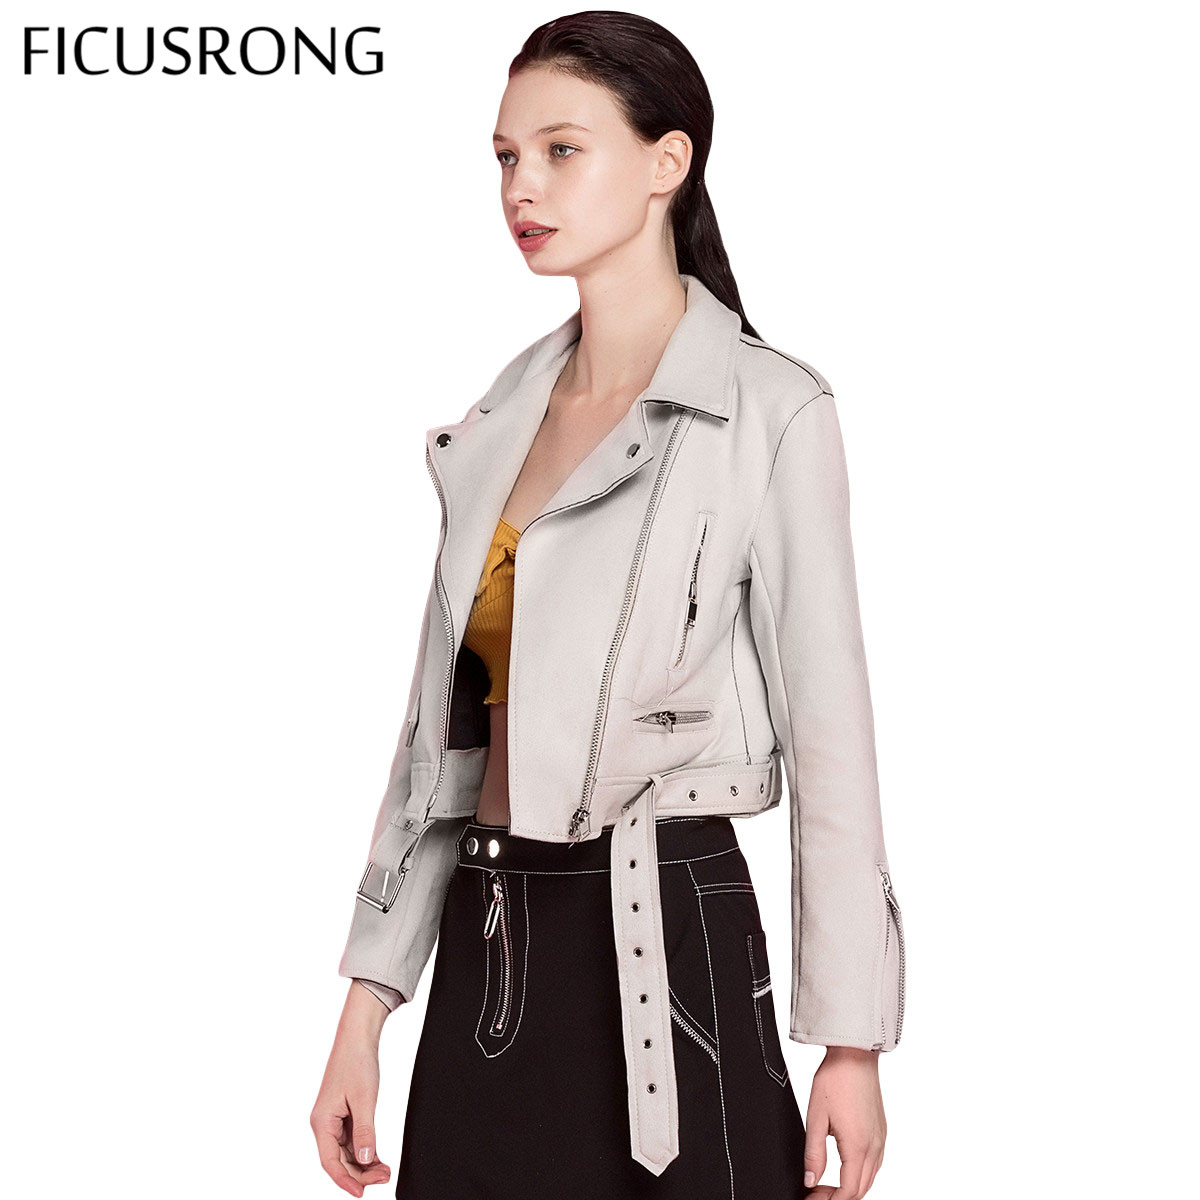 2019 New Autumn Winter Women Motorcycle Faux PU   Leather   Beige Pink Jackets Lady Biker Outerwear Coat with Belt 6 Color FICUSRONG